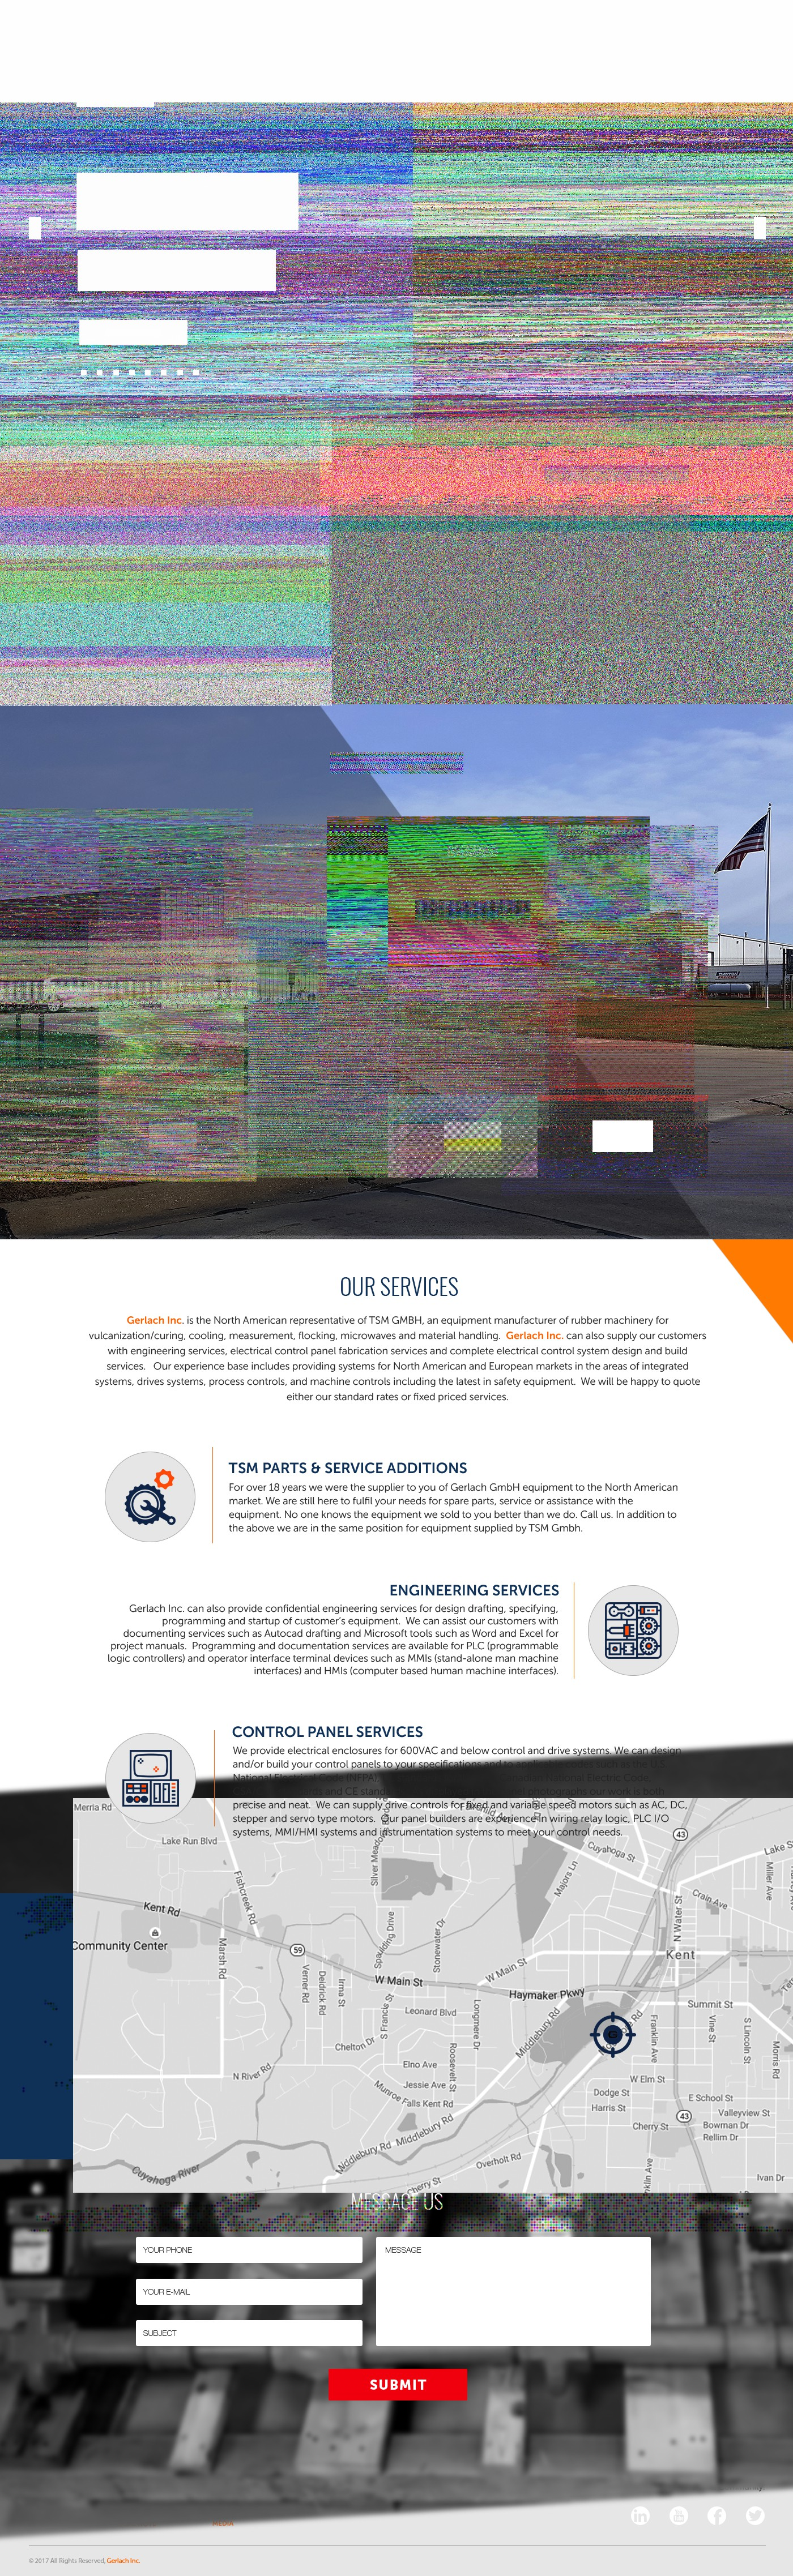 Responsive Webdesign for a machine company needed